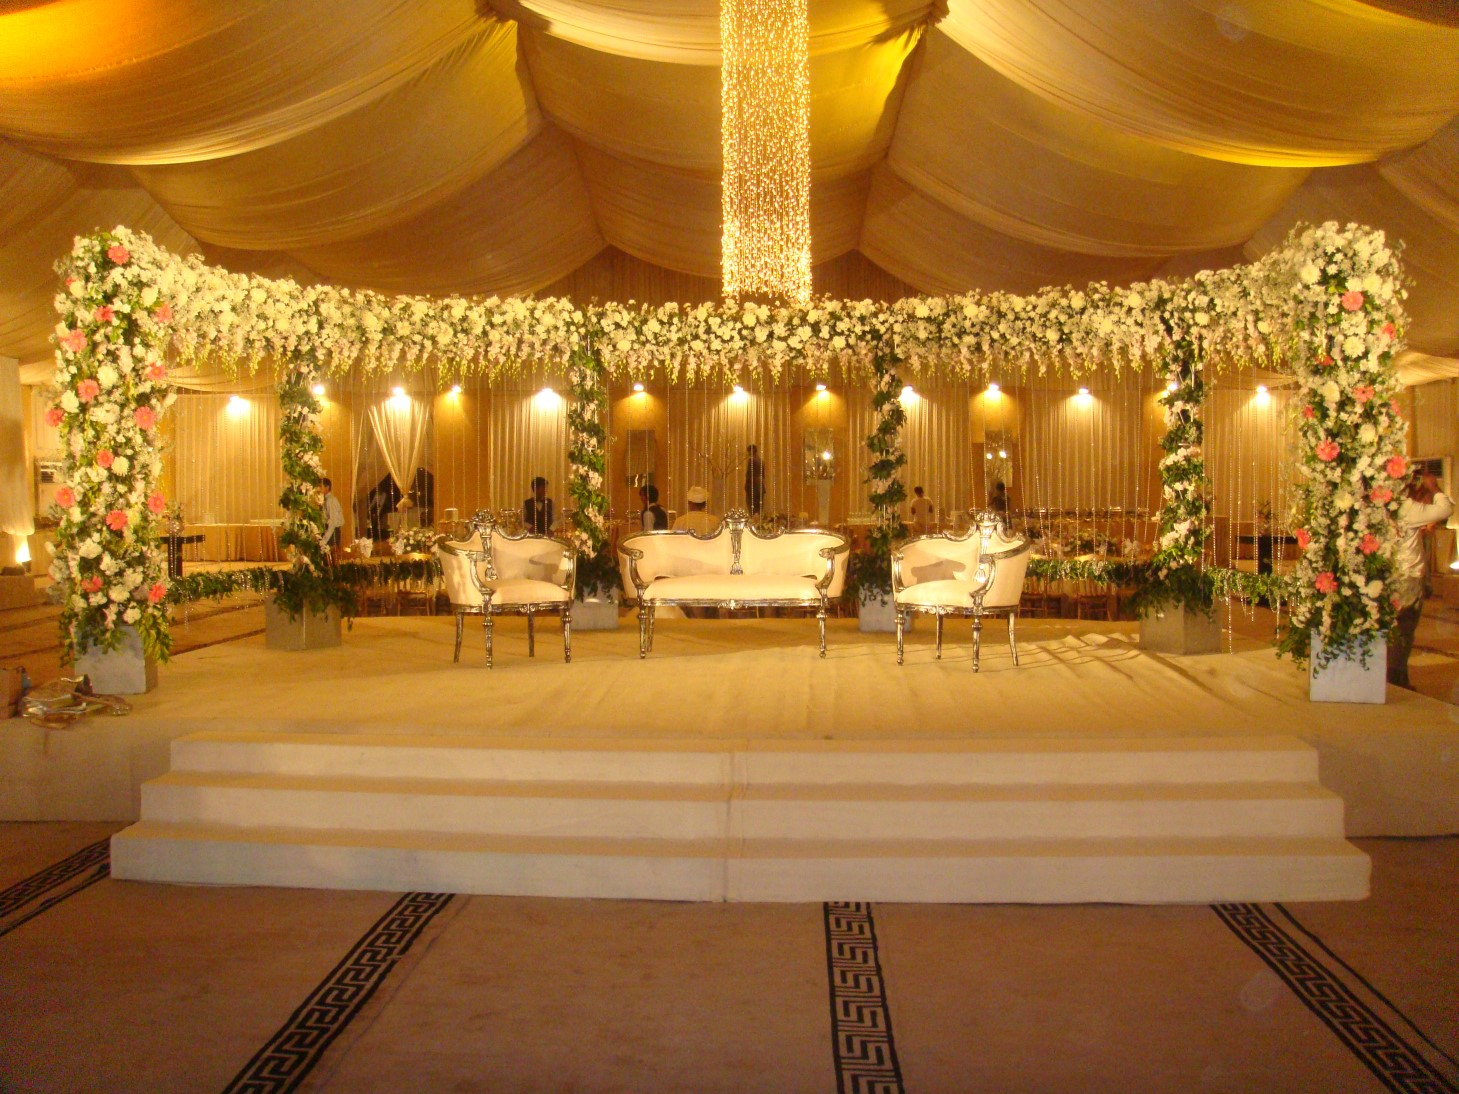 About marriage marriage decoration photos 2013 marriage for Wedding decoration images